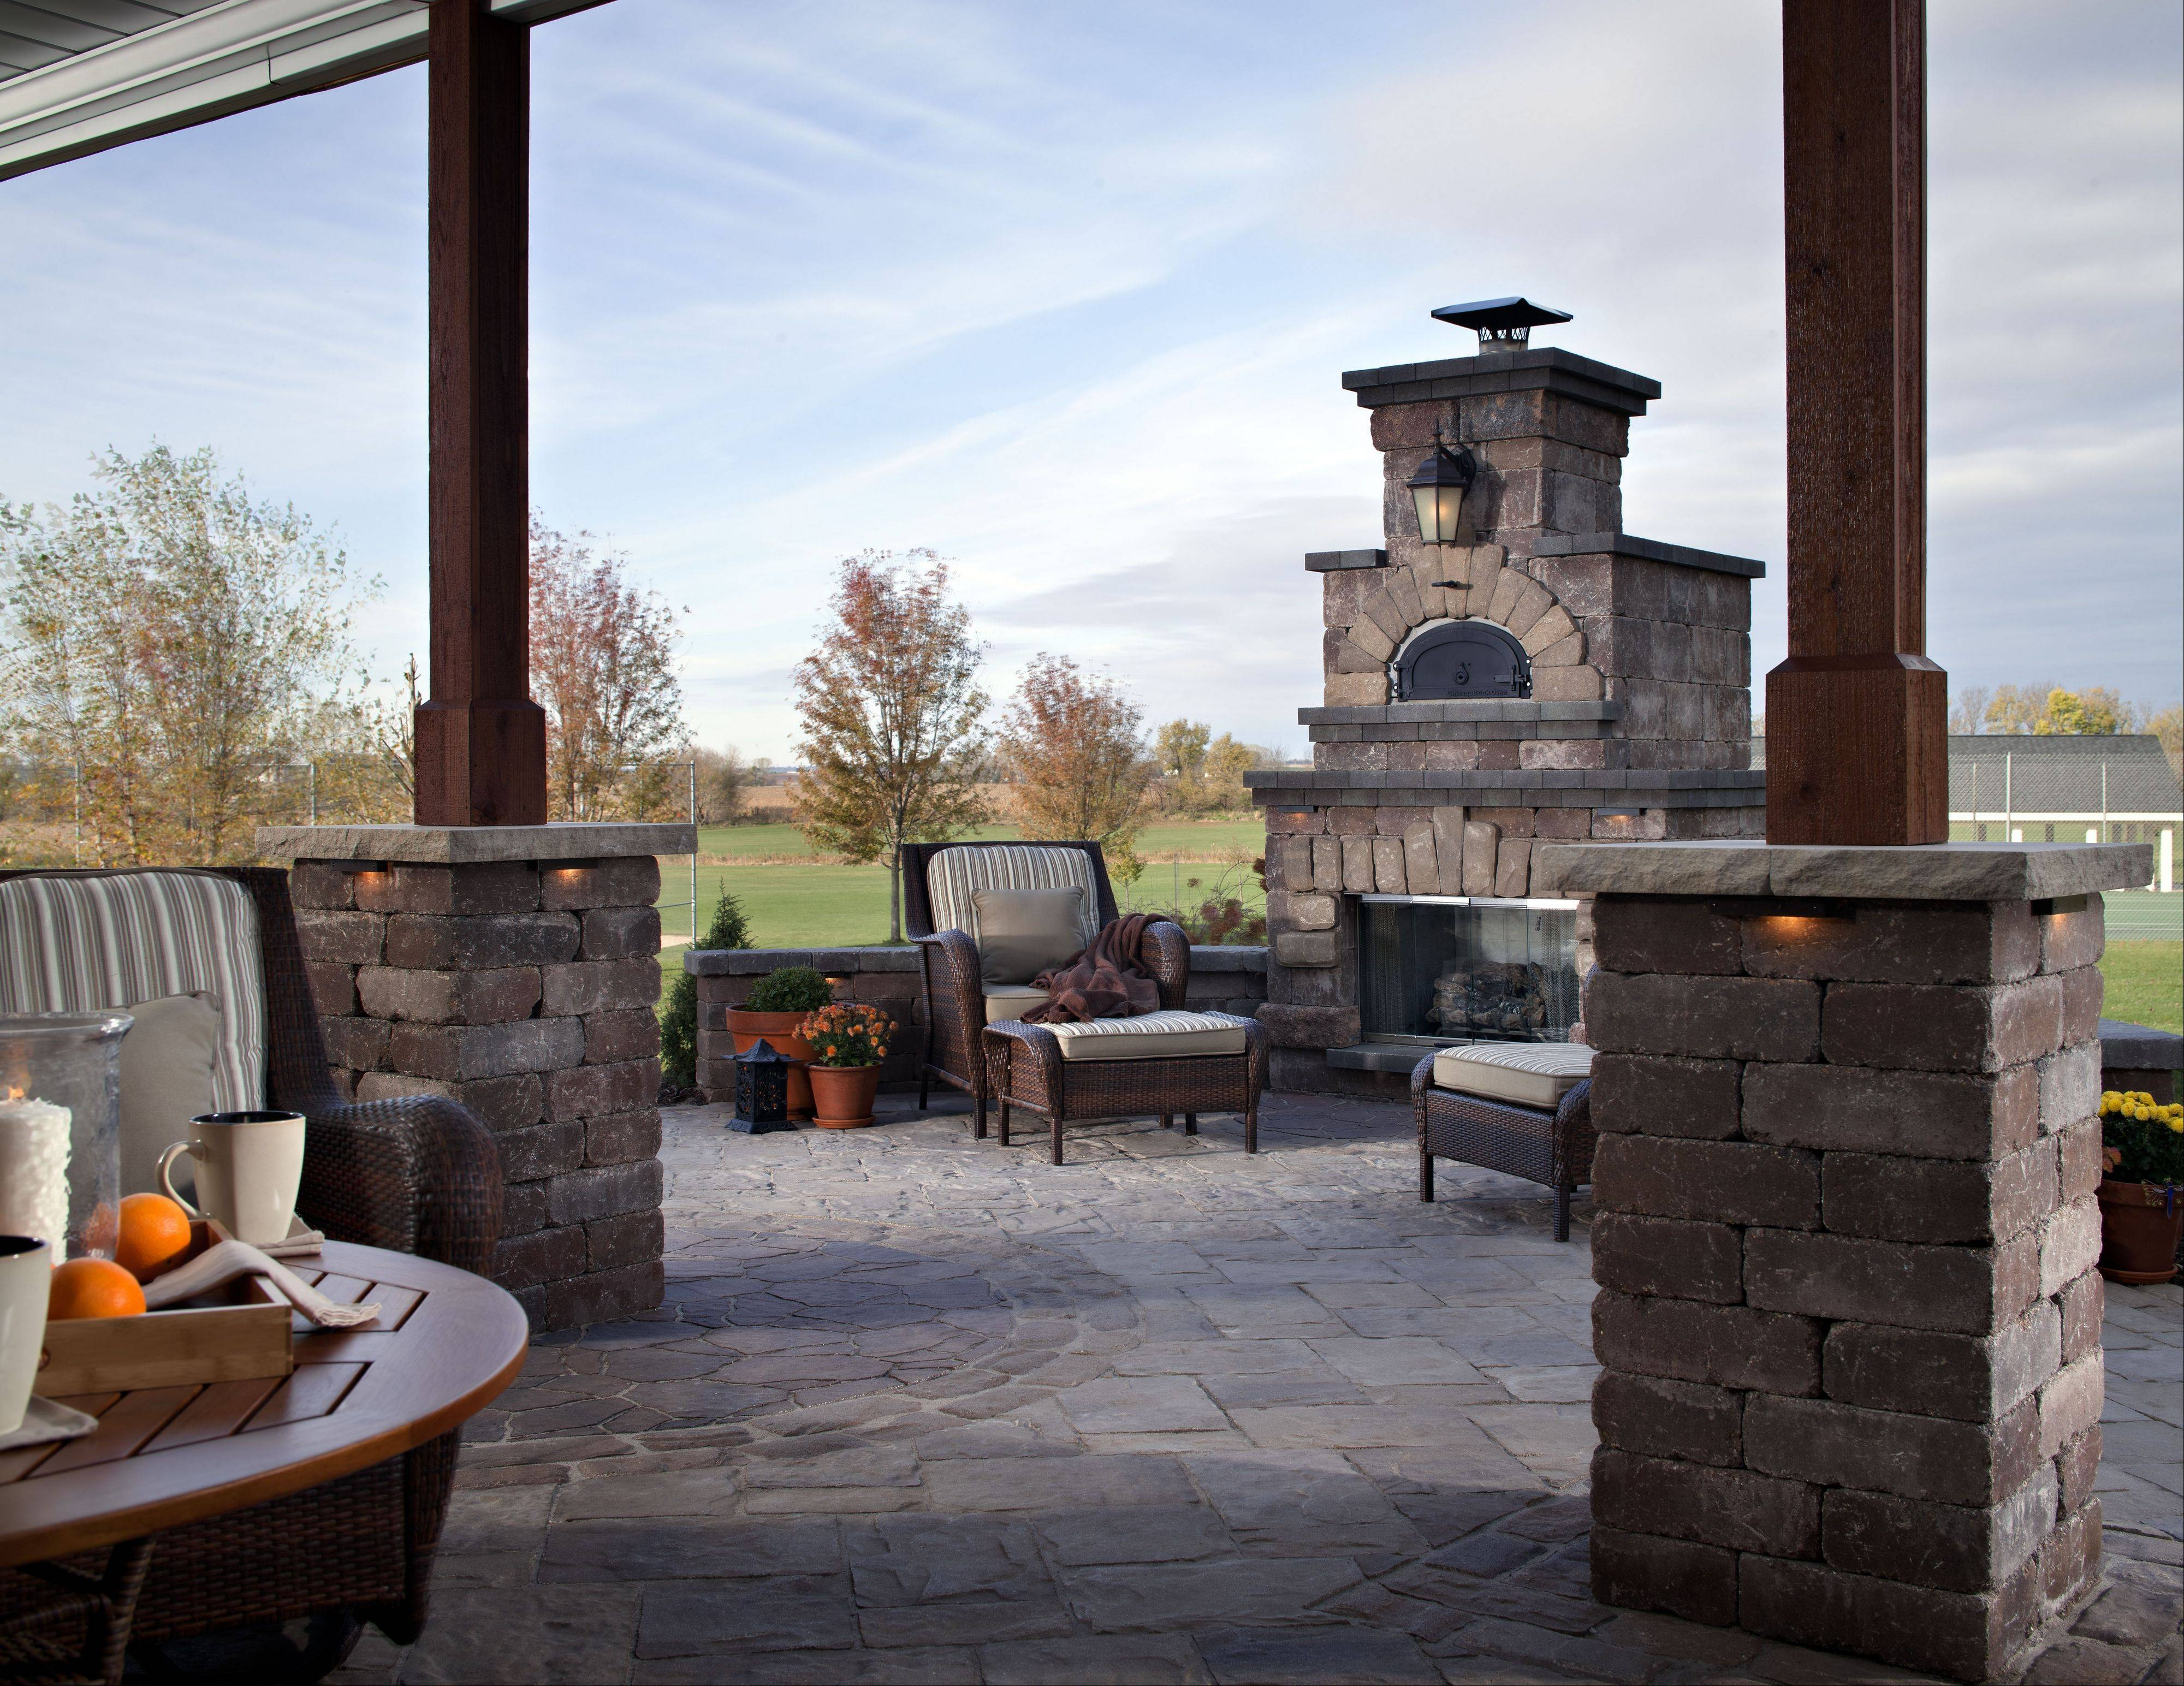 Brick ovens for baking or making pizza have become a more common feature on outdoor fireplaces.